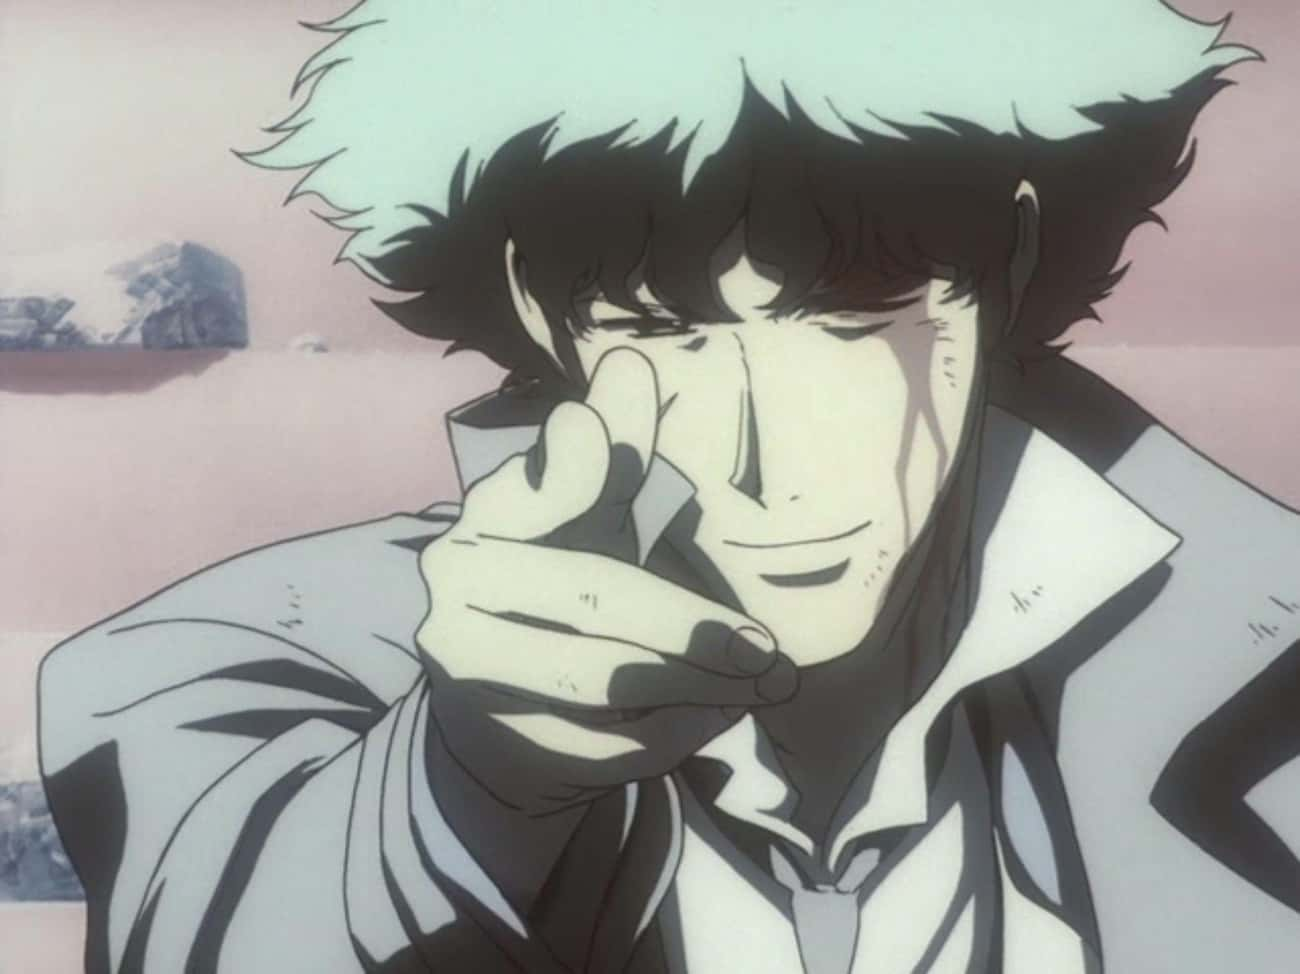 Cowboy Bebop is listed (or ranked) 3 on the list 15 Anime With Bittersweet Endings